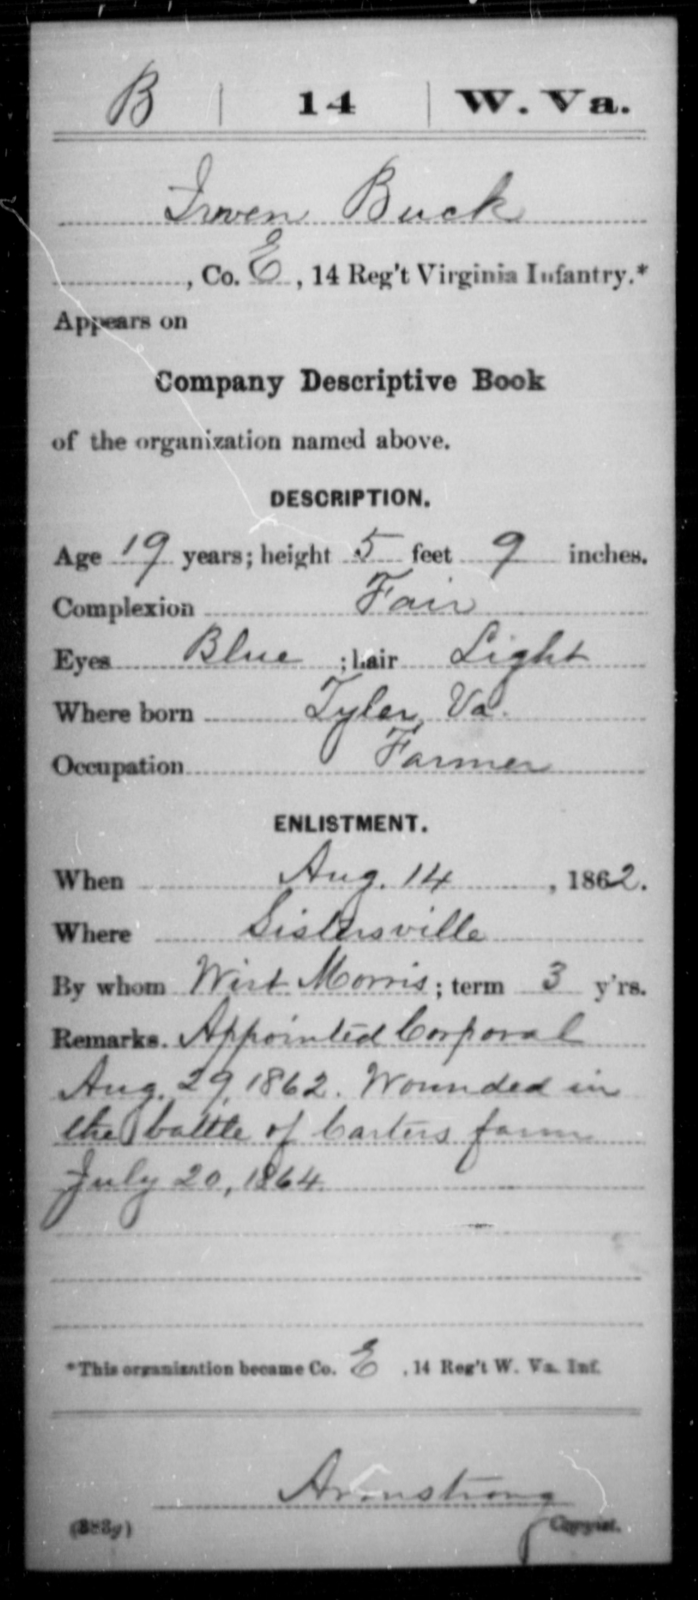 Buck, Irven - Age 19, Year: 1862 - Miscellaneous Card Abstracts of Records - West Virginia